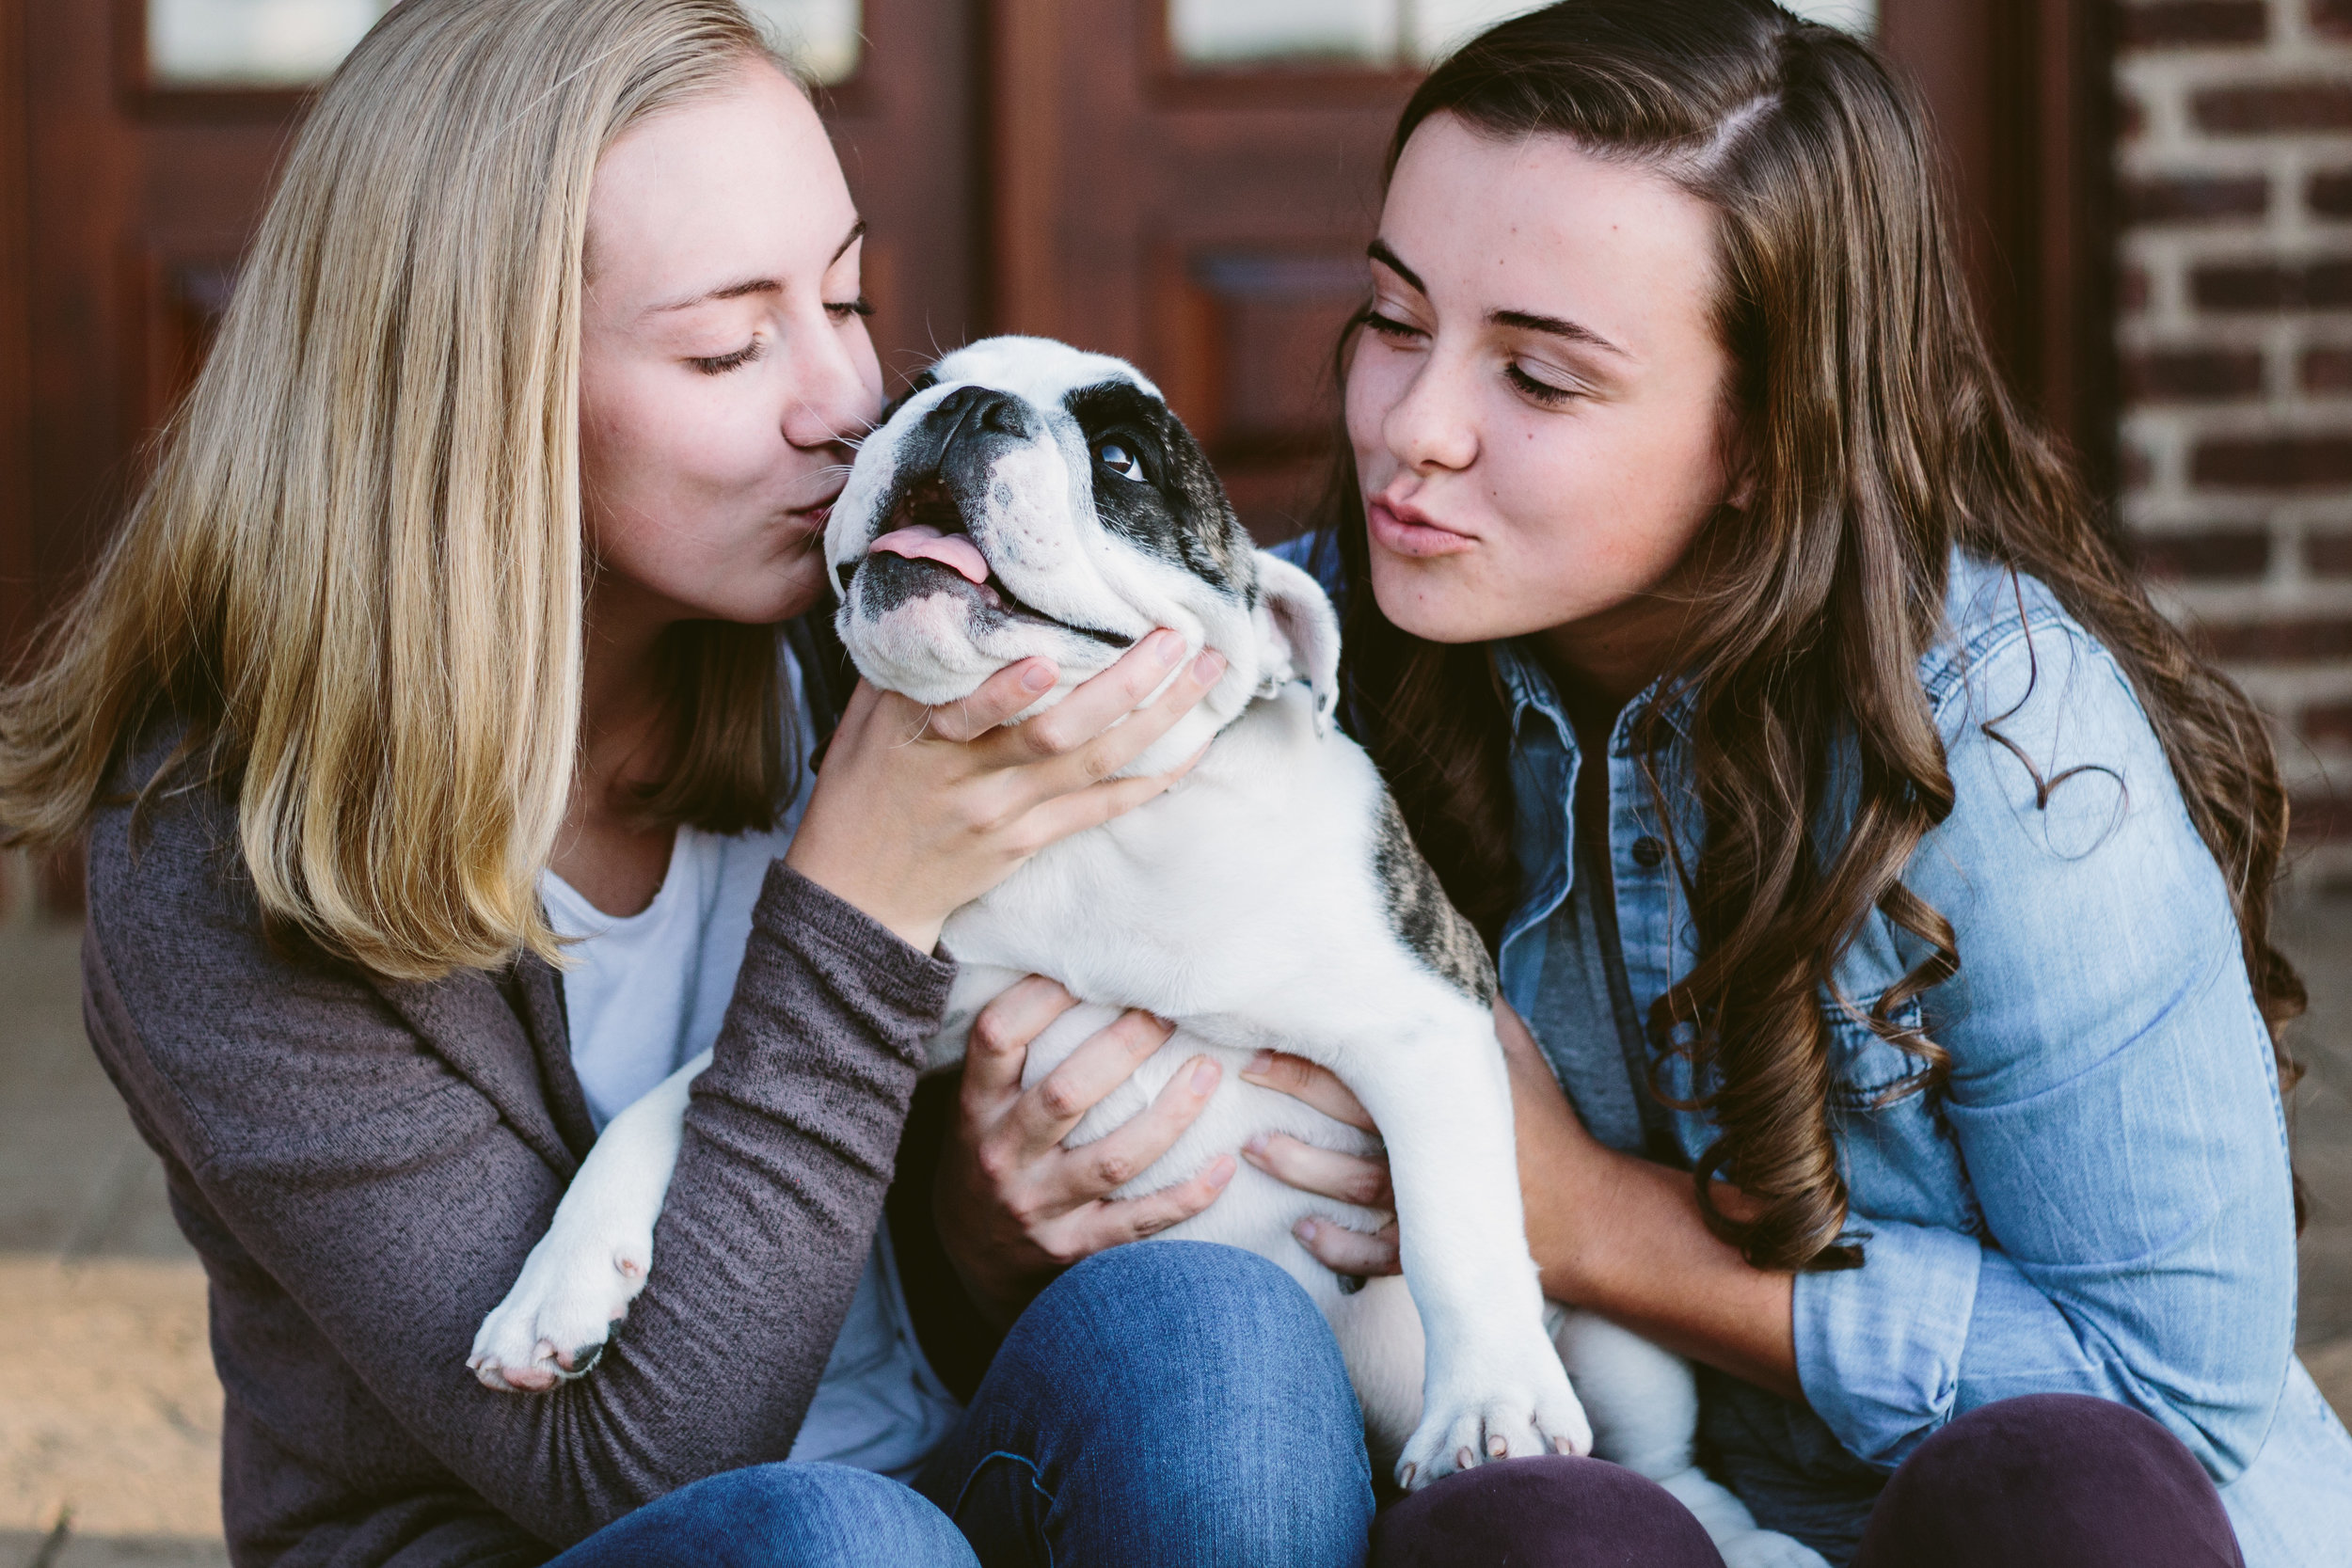 poses, outdoor, city, ideas, brick, young, inspiration, urban, fun, outfit, senior, simple, creative, artsy, dramatic, artistic, light and airy, natural light, head shots, Tumblr, Knoxville, sisters, with dog